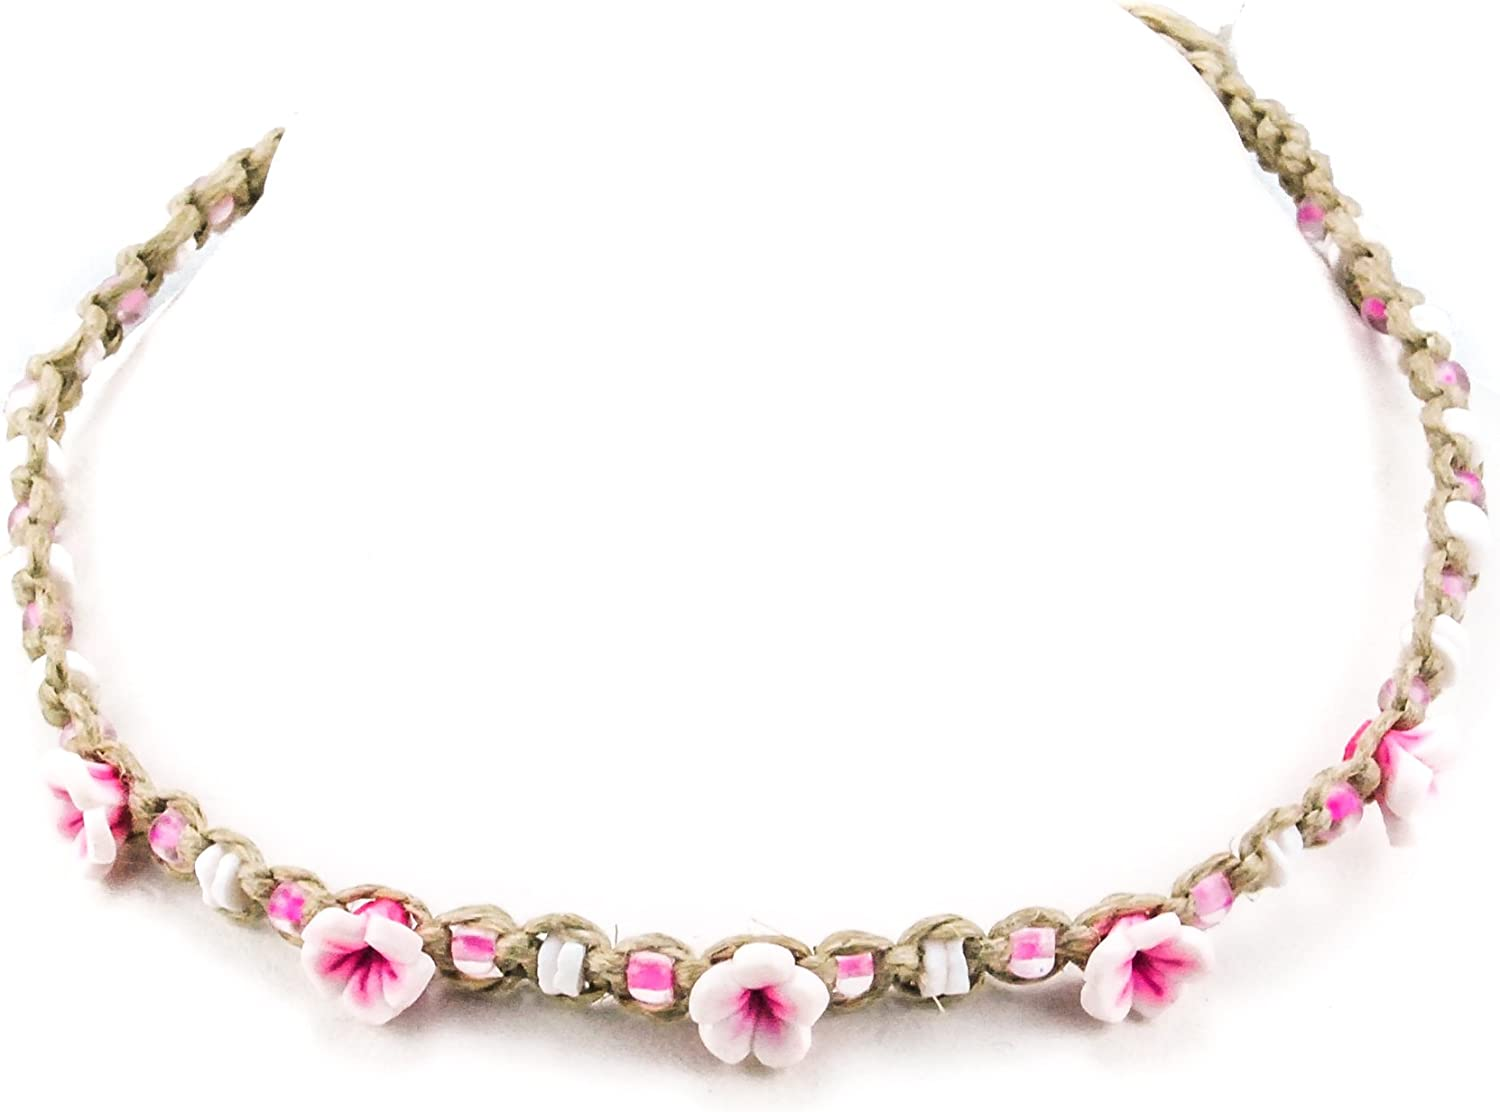 BlueRica Braided Hemp Cord Choker Necklace with Puka Shell Beads & Pink Fimo Flowers